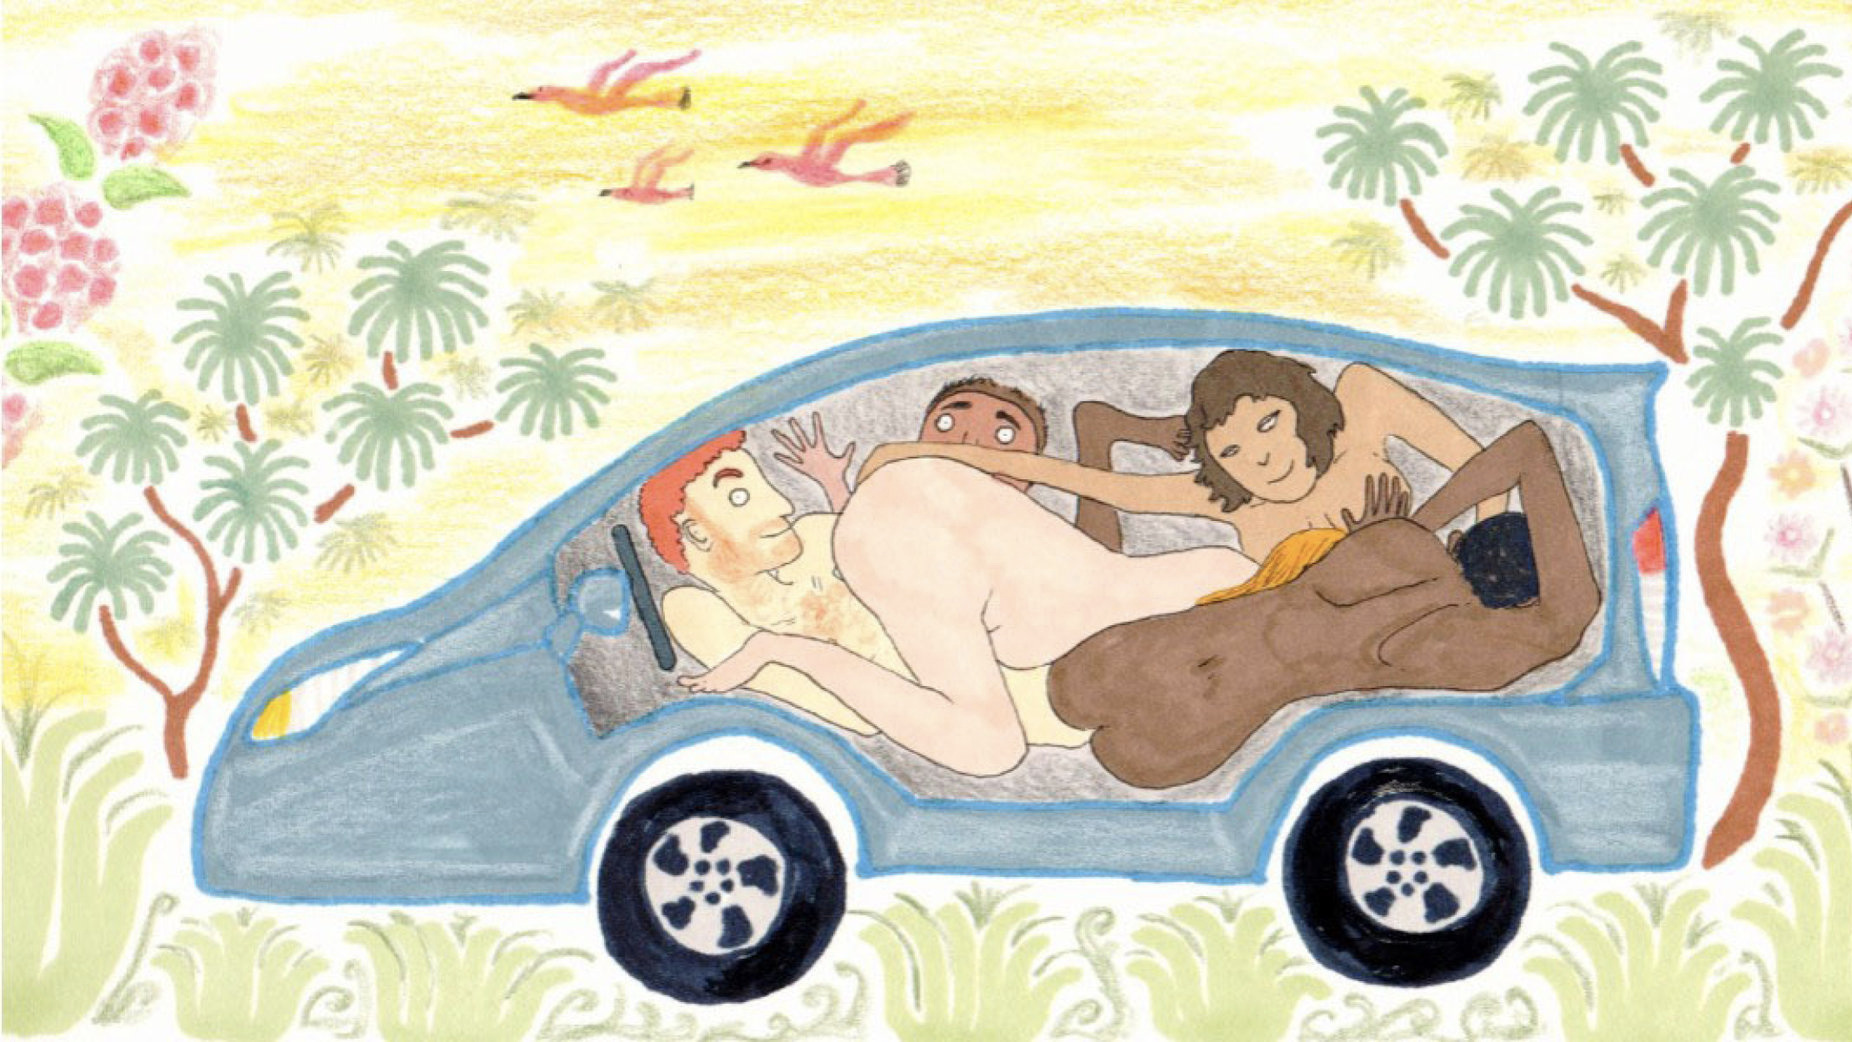 Carma Sutra: An Illustrated Guide to Vehicular Coitus  MEL MAGAZINE